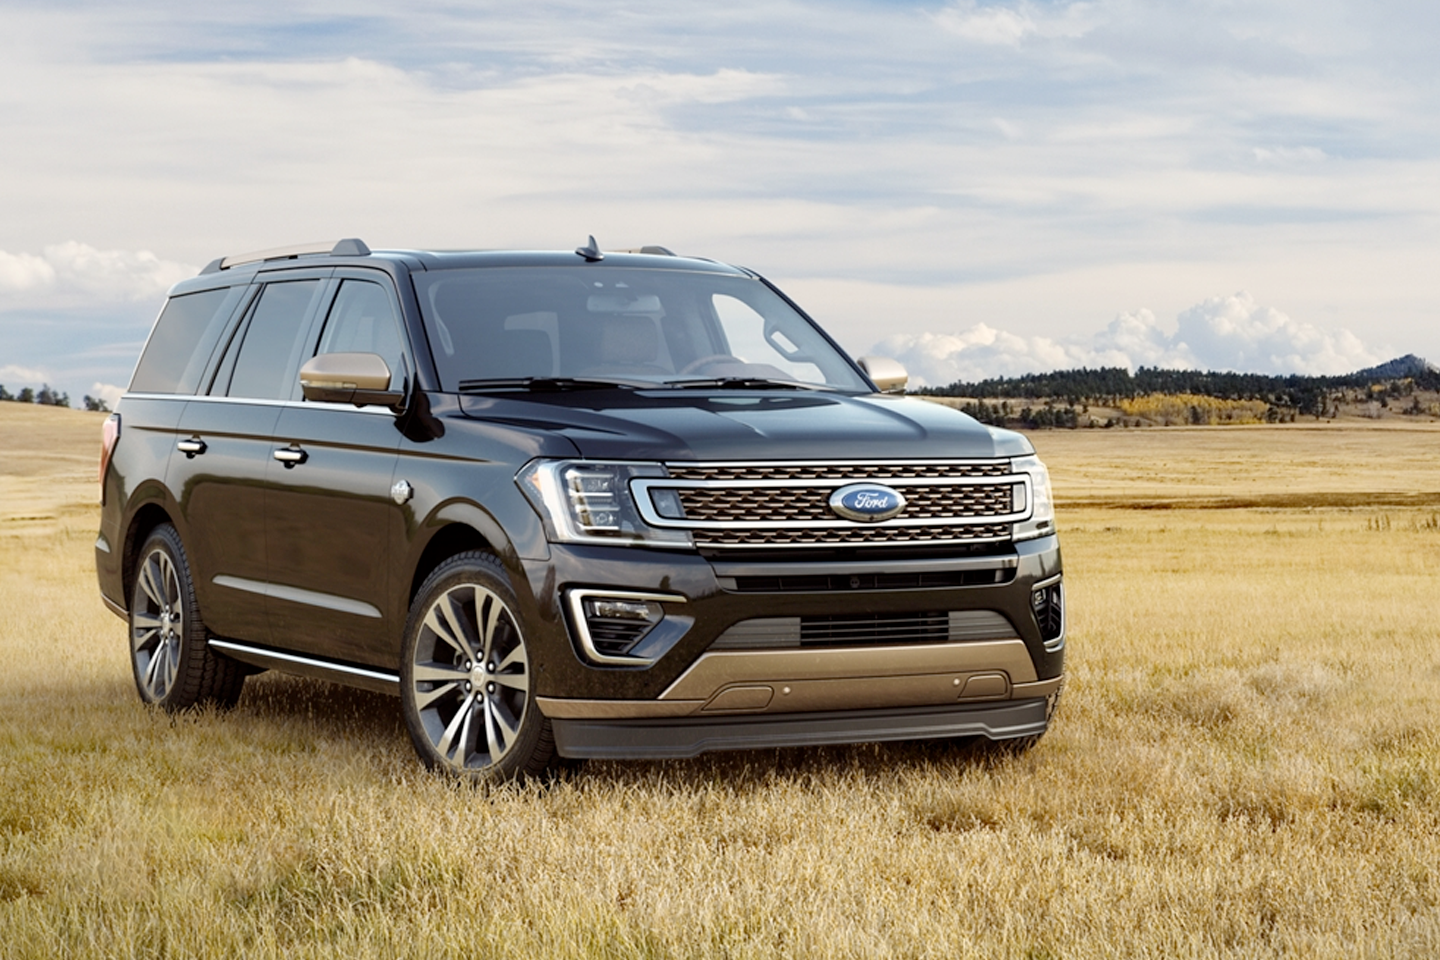 2020 Ford Expedition - Looks Meet Comfort